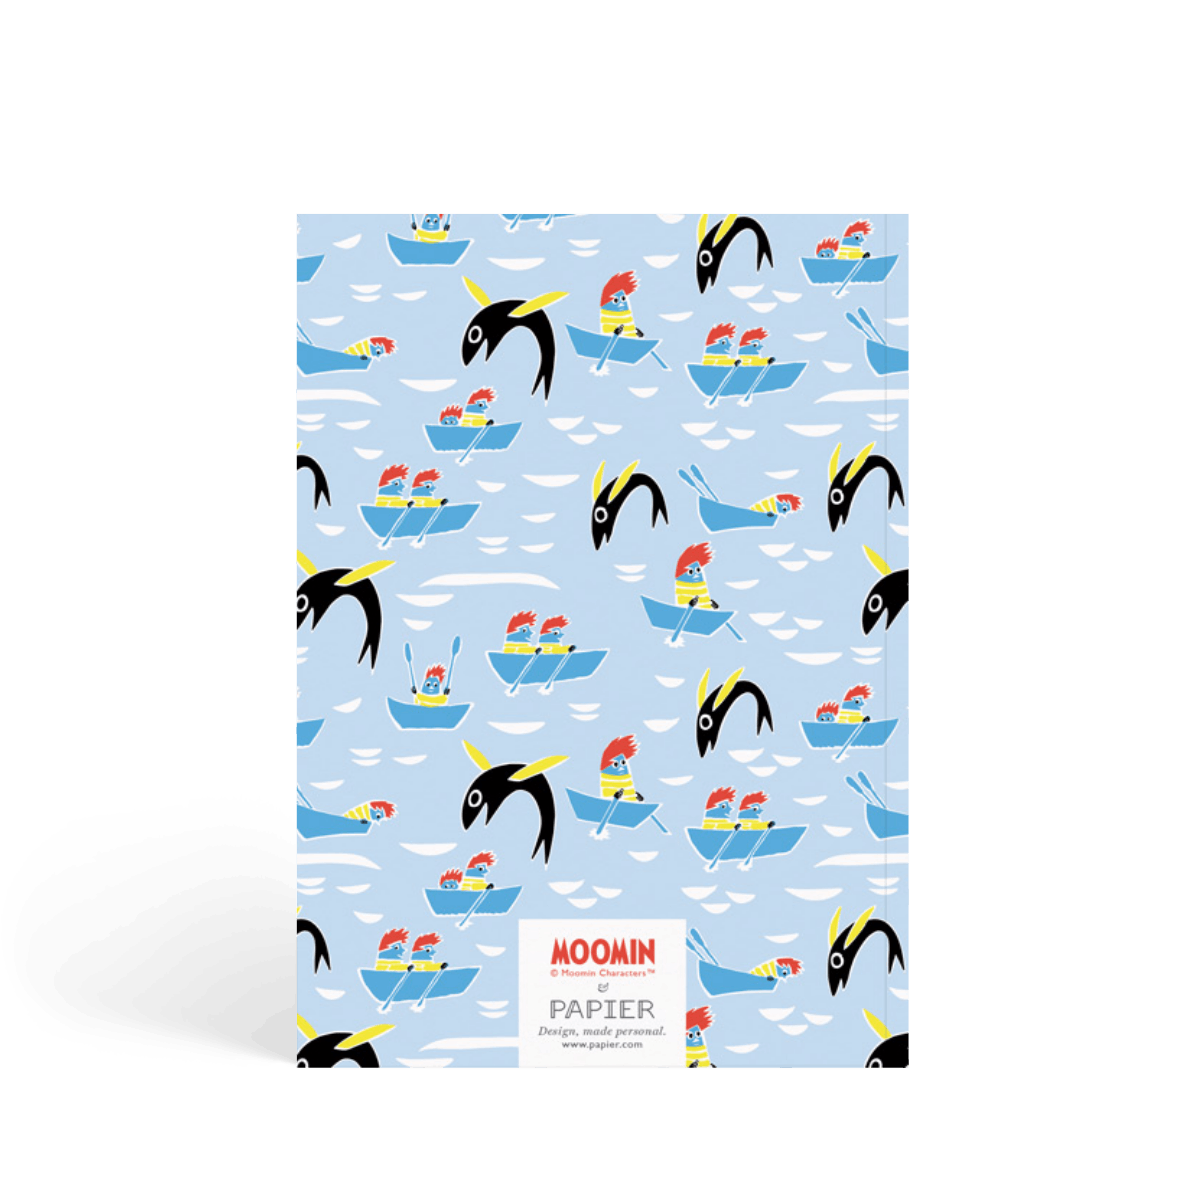 Https%3a%2f%2fwww.papier.com%2fproduct image%2f22880%2f5%2fmoomin fishing 5749 arriere 1495190081.png?ixlib=rb 1.1